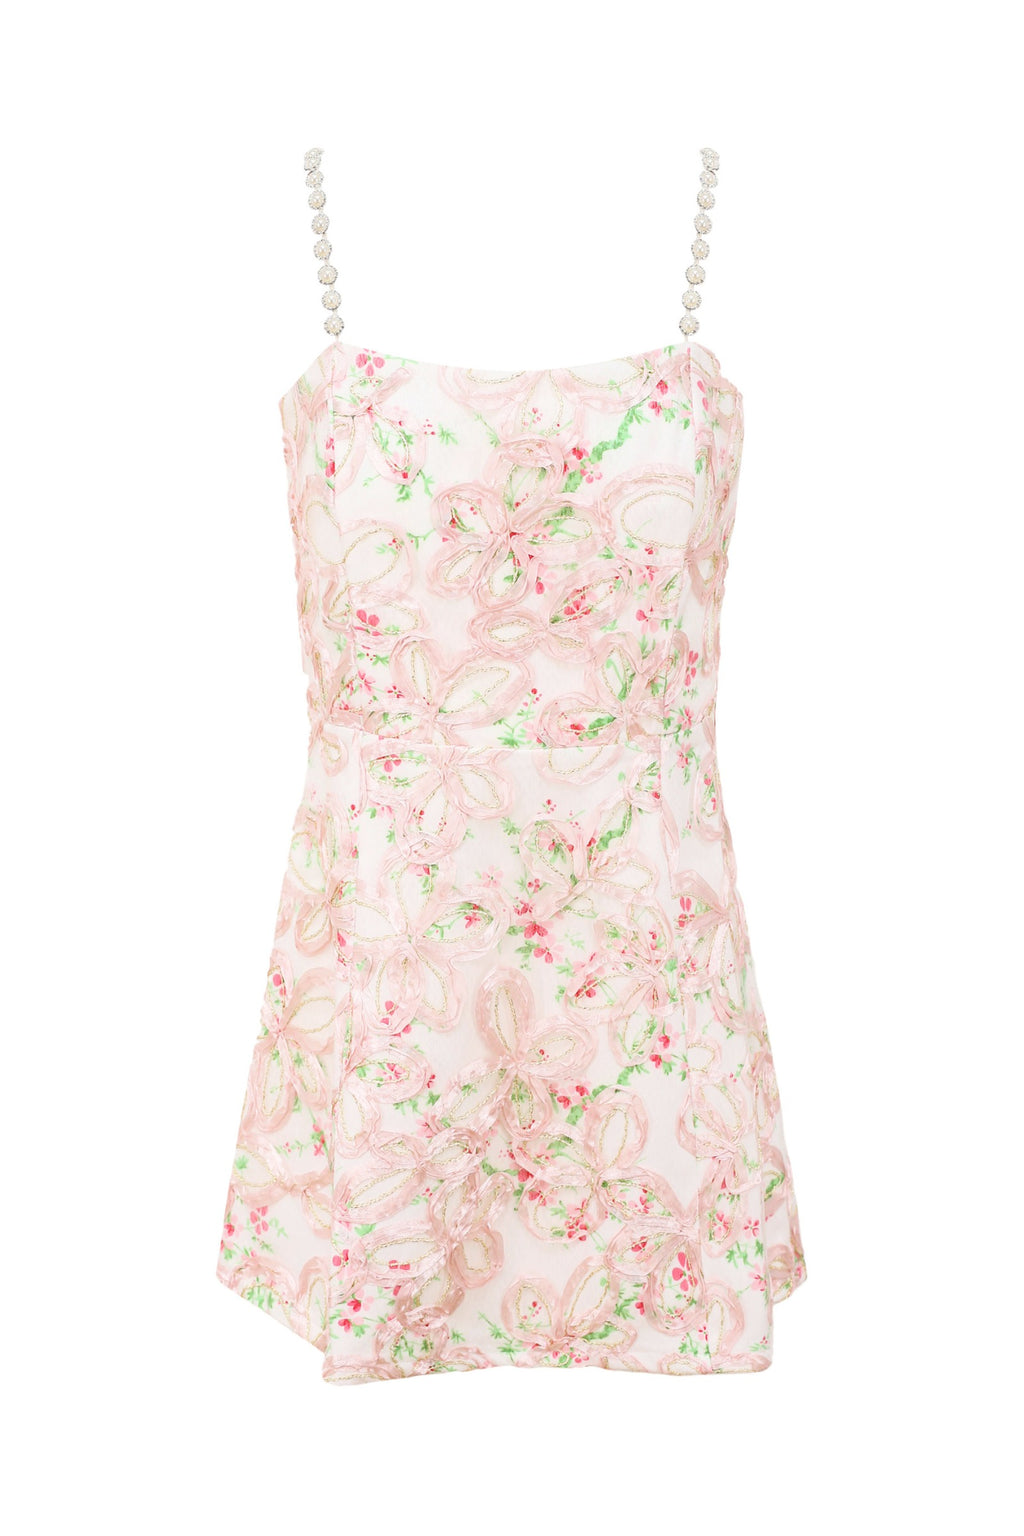 Pink Cherry Blossom Summer Dress